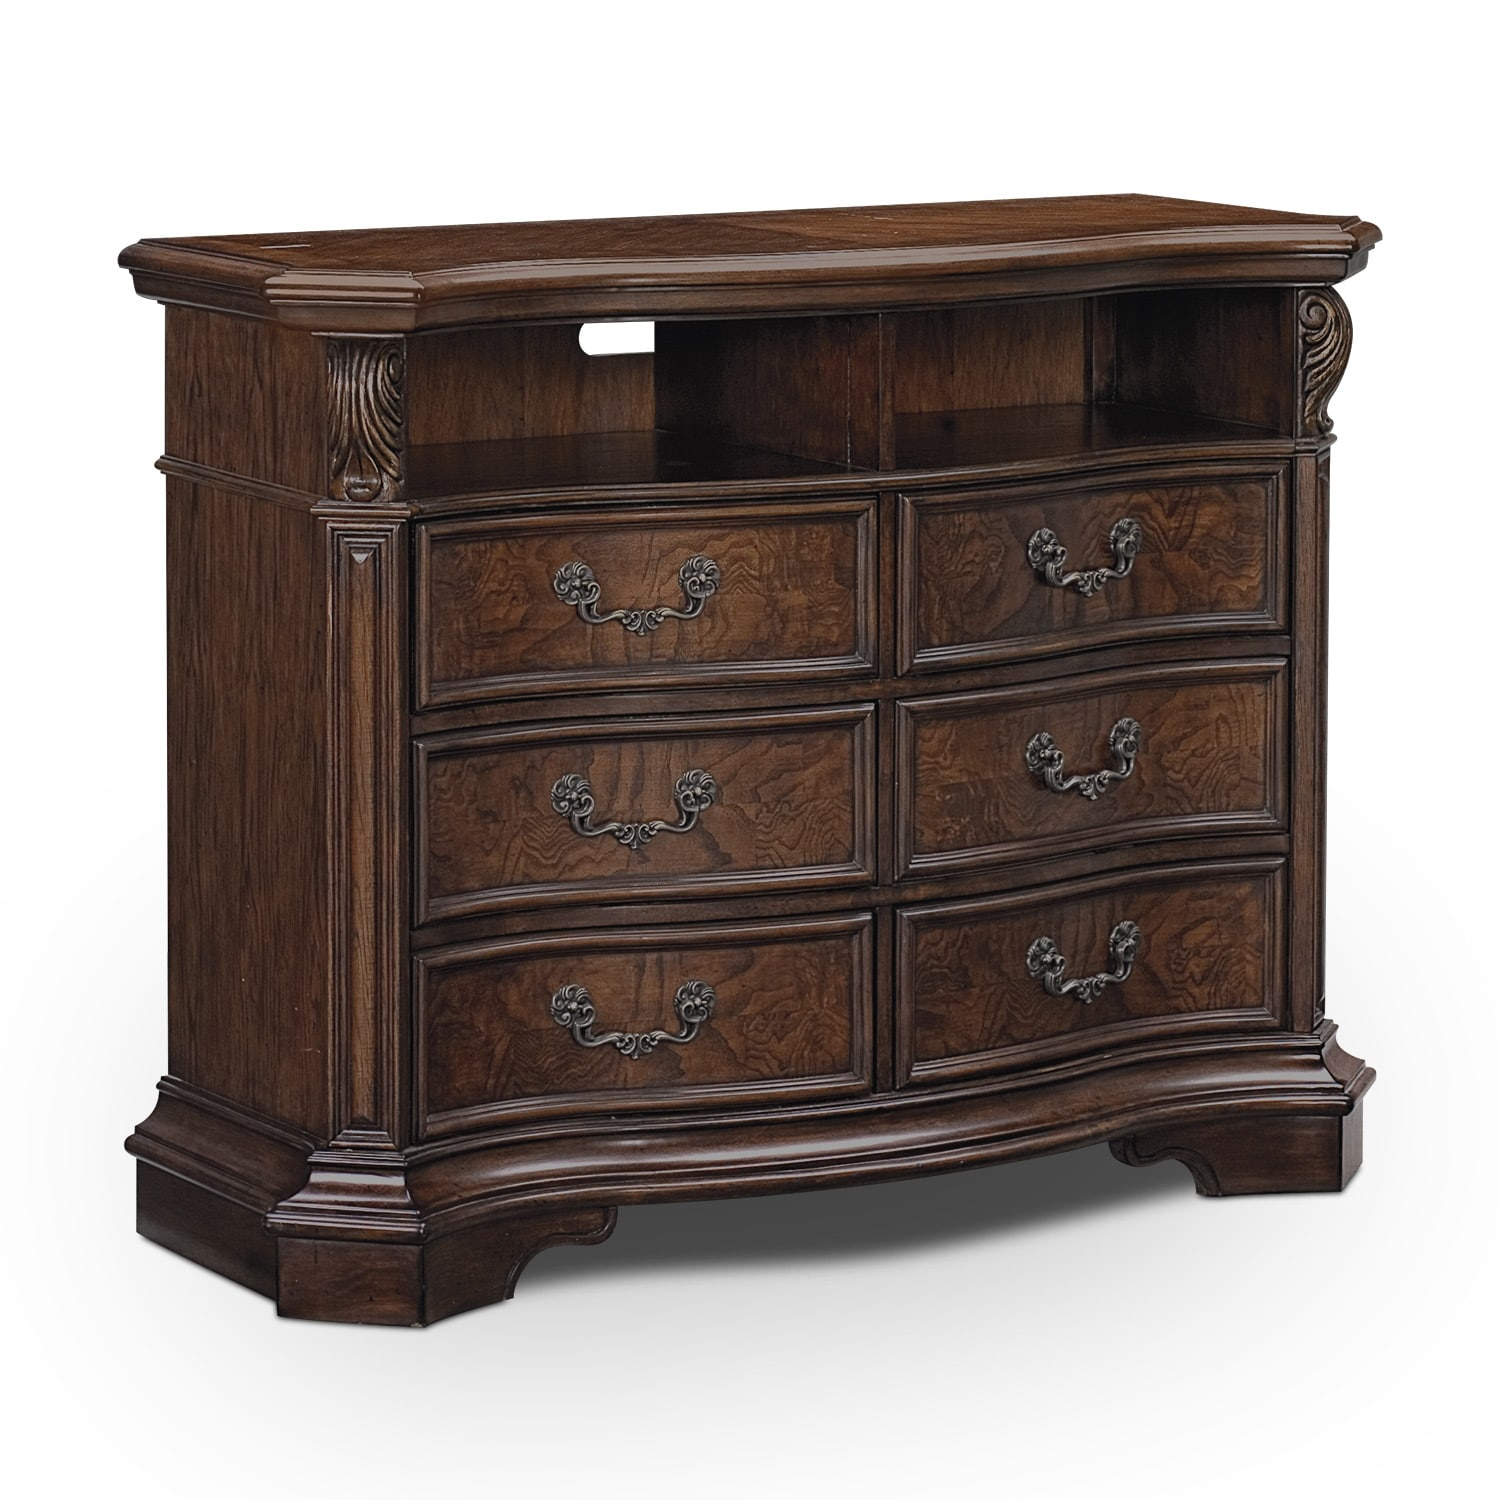 monticello pecan bedroom media chest value city furniture. Black Bedroom Furniture Sets. Home Design Ideas